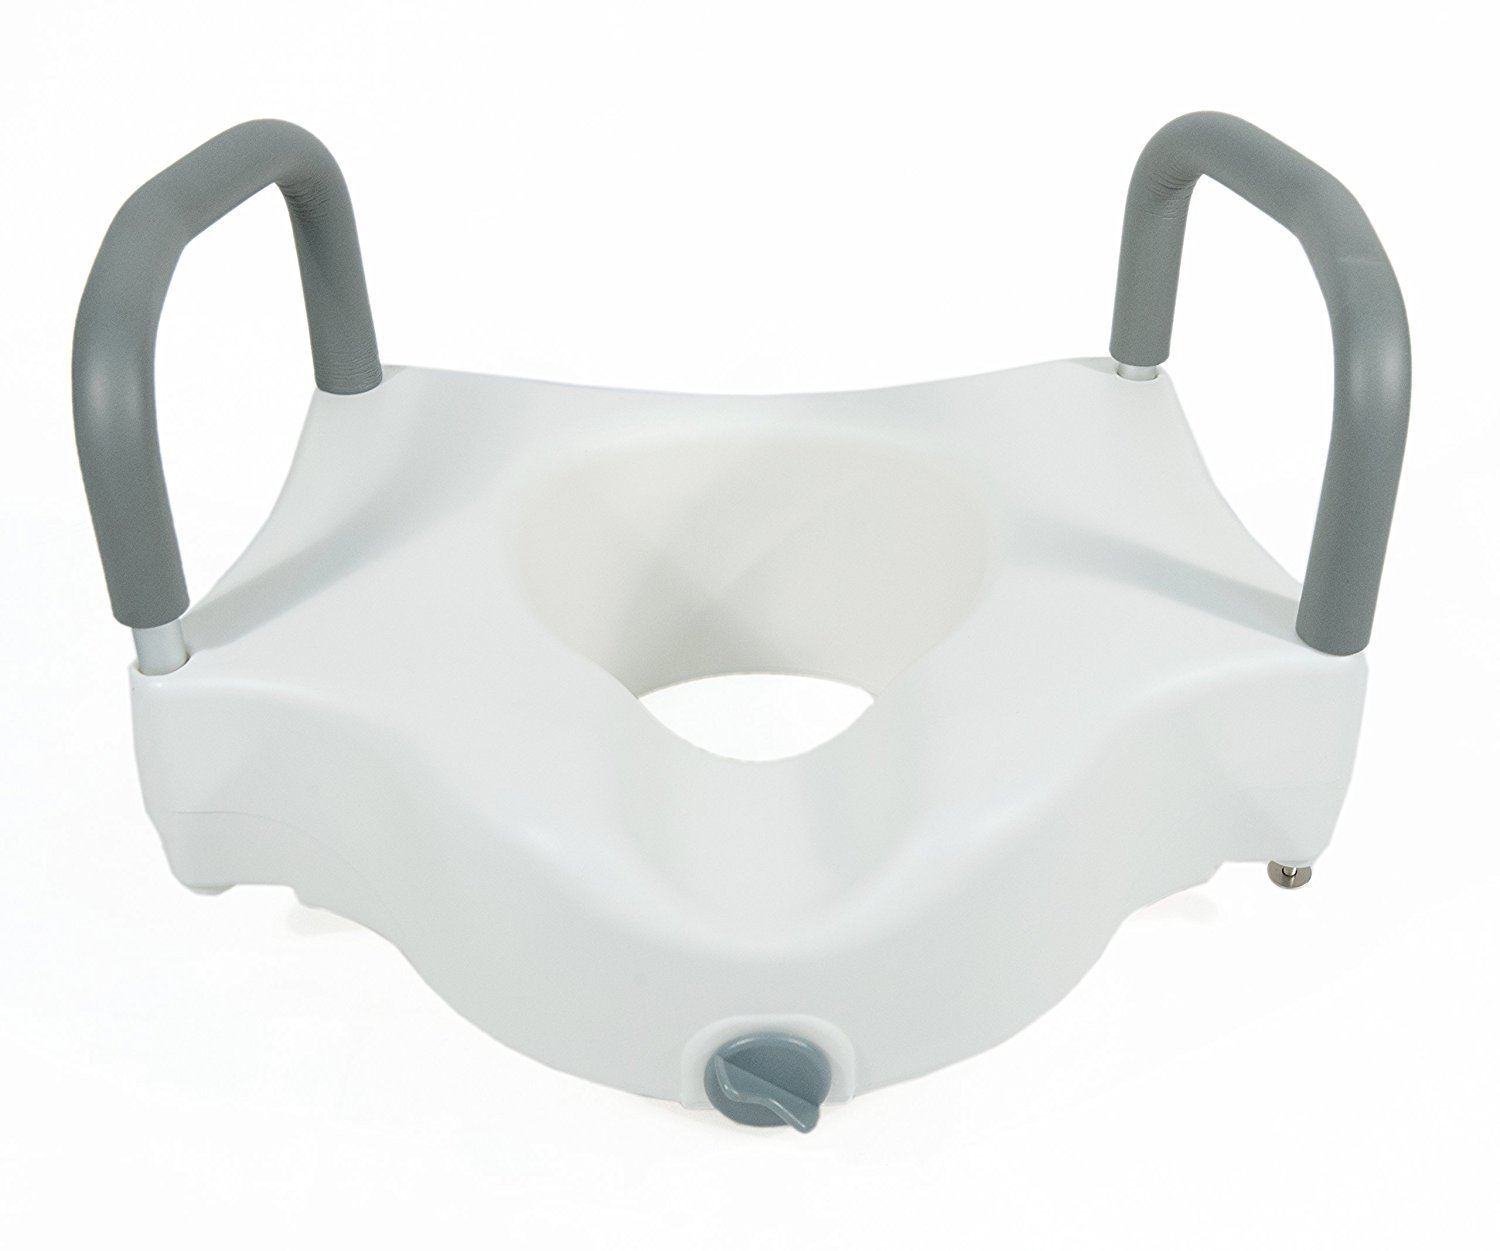 AdirMed Raised Toilet Seat with Removable Arms and Lock